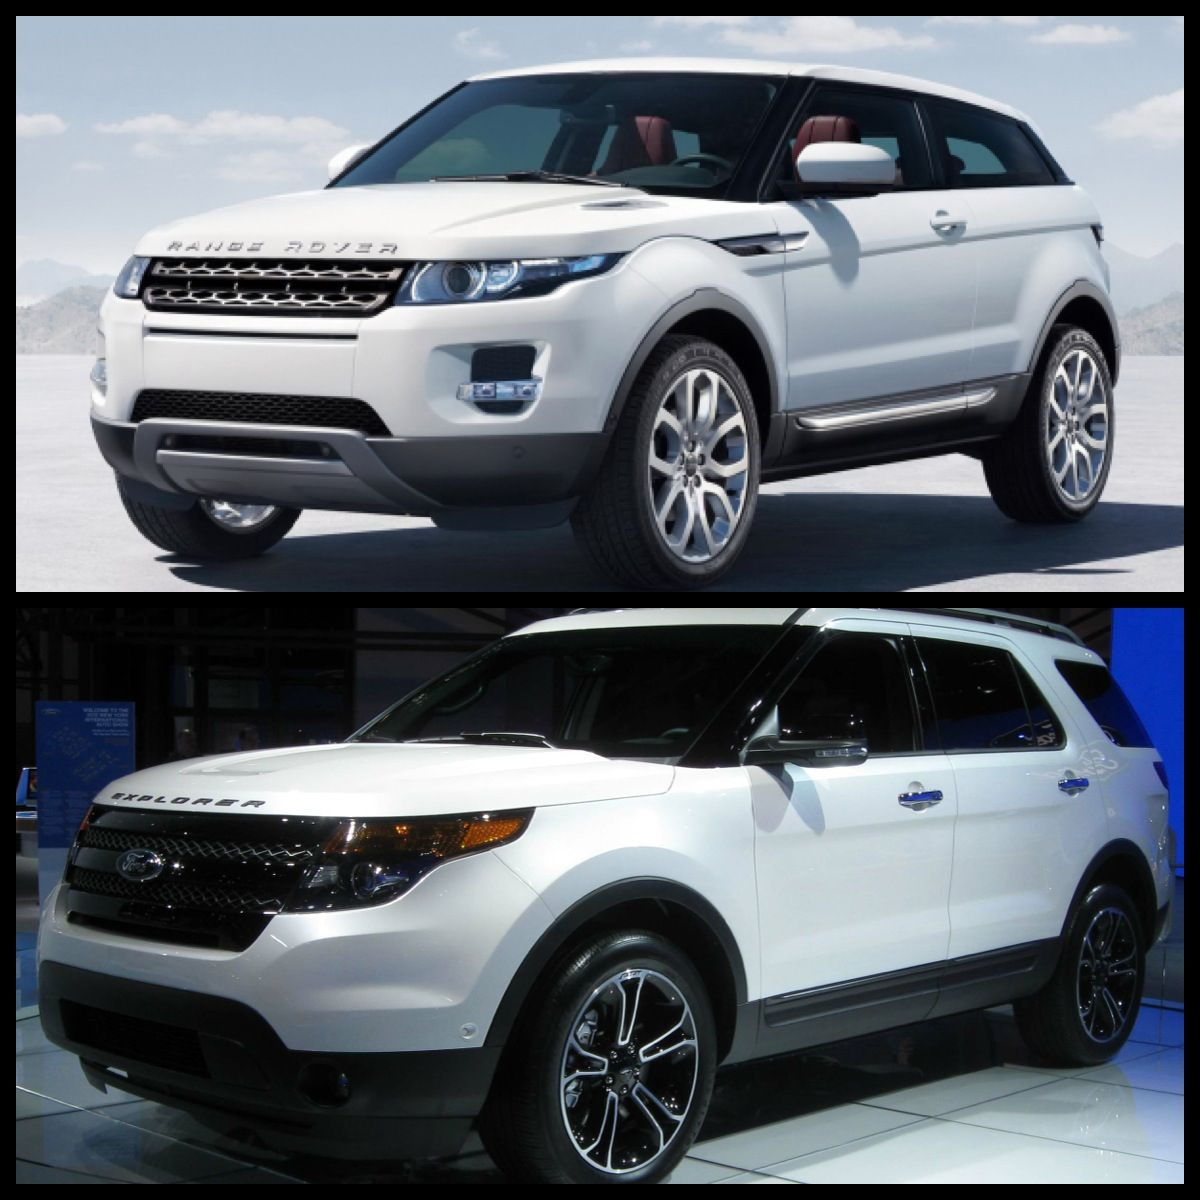 new ford explorer vs new range rover hmmmm cars. Black Bedroom Furniture Sets. Home Design Ideas